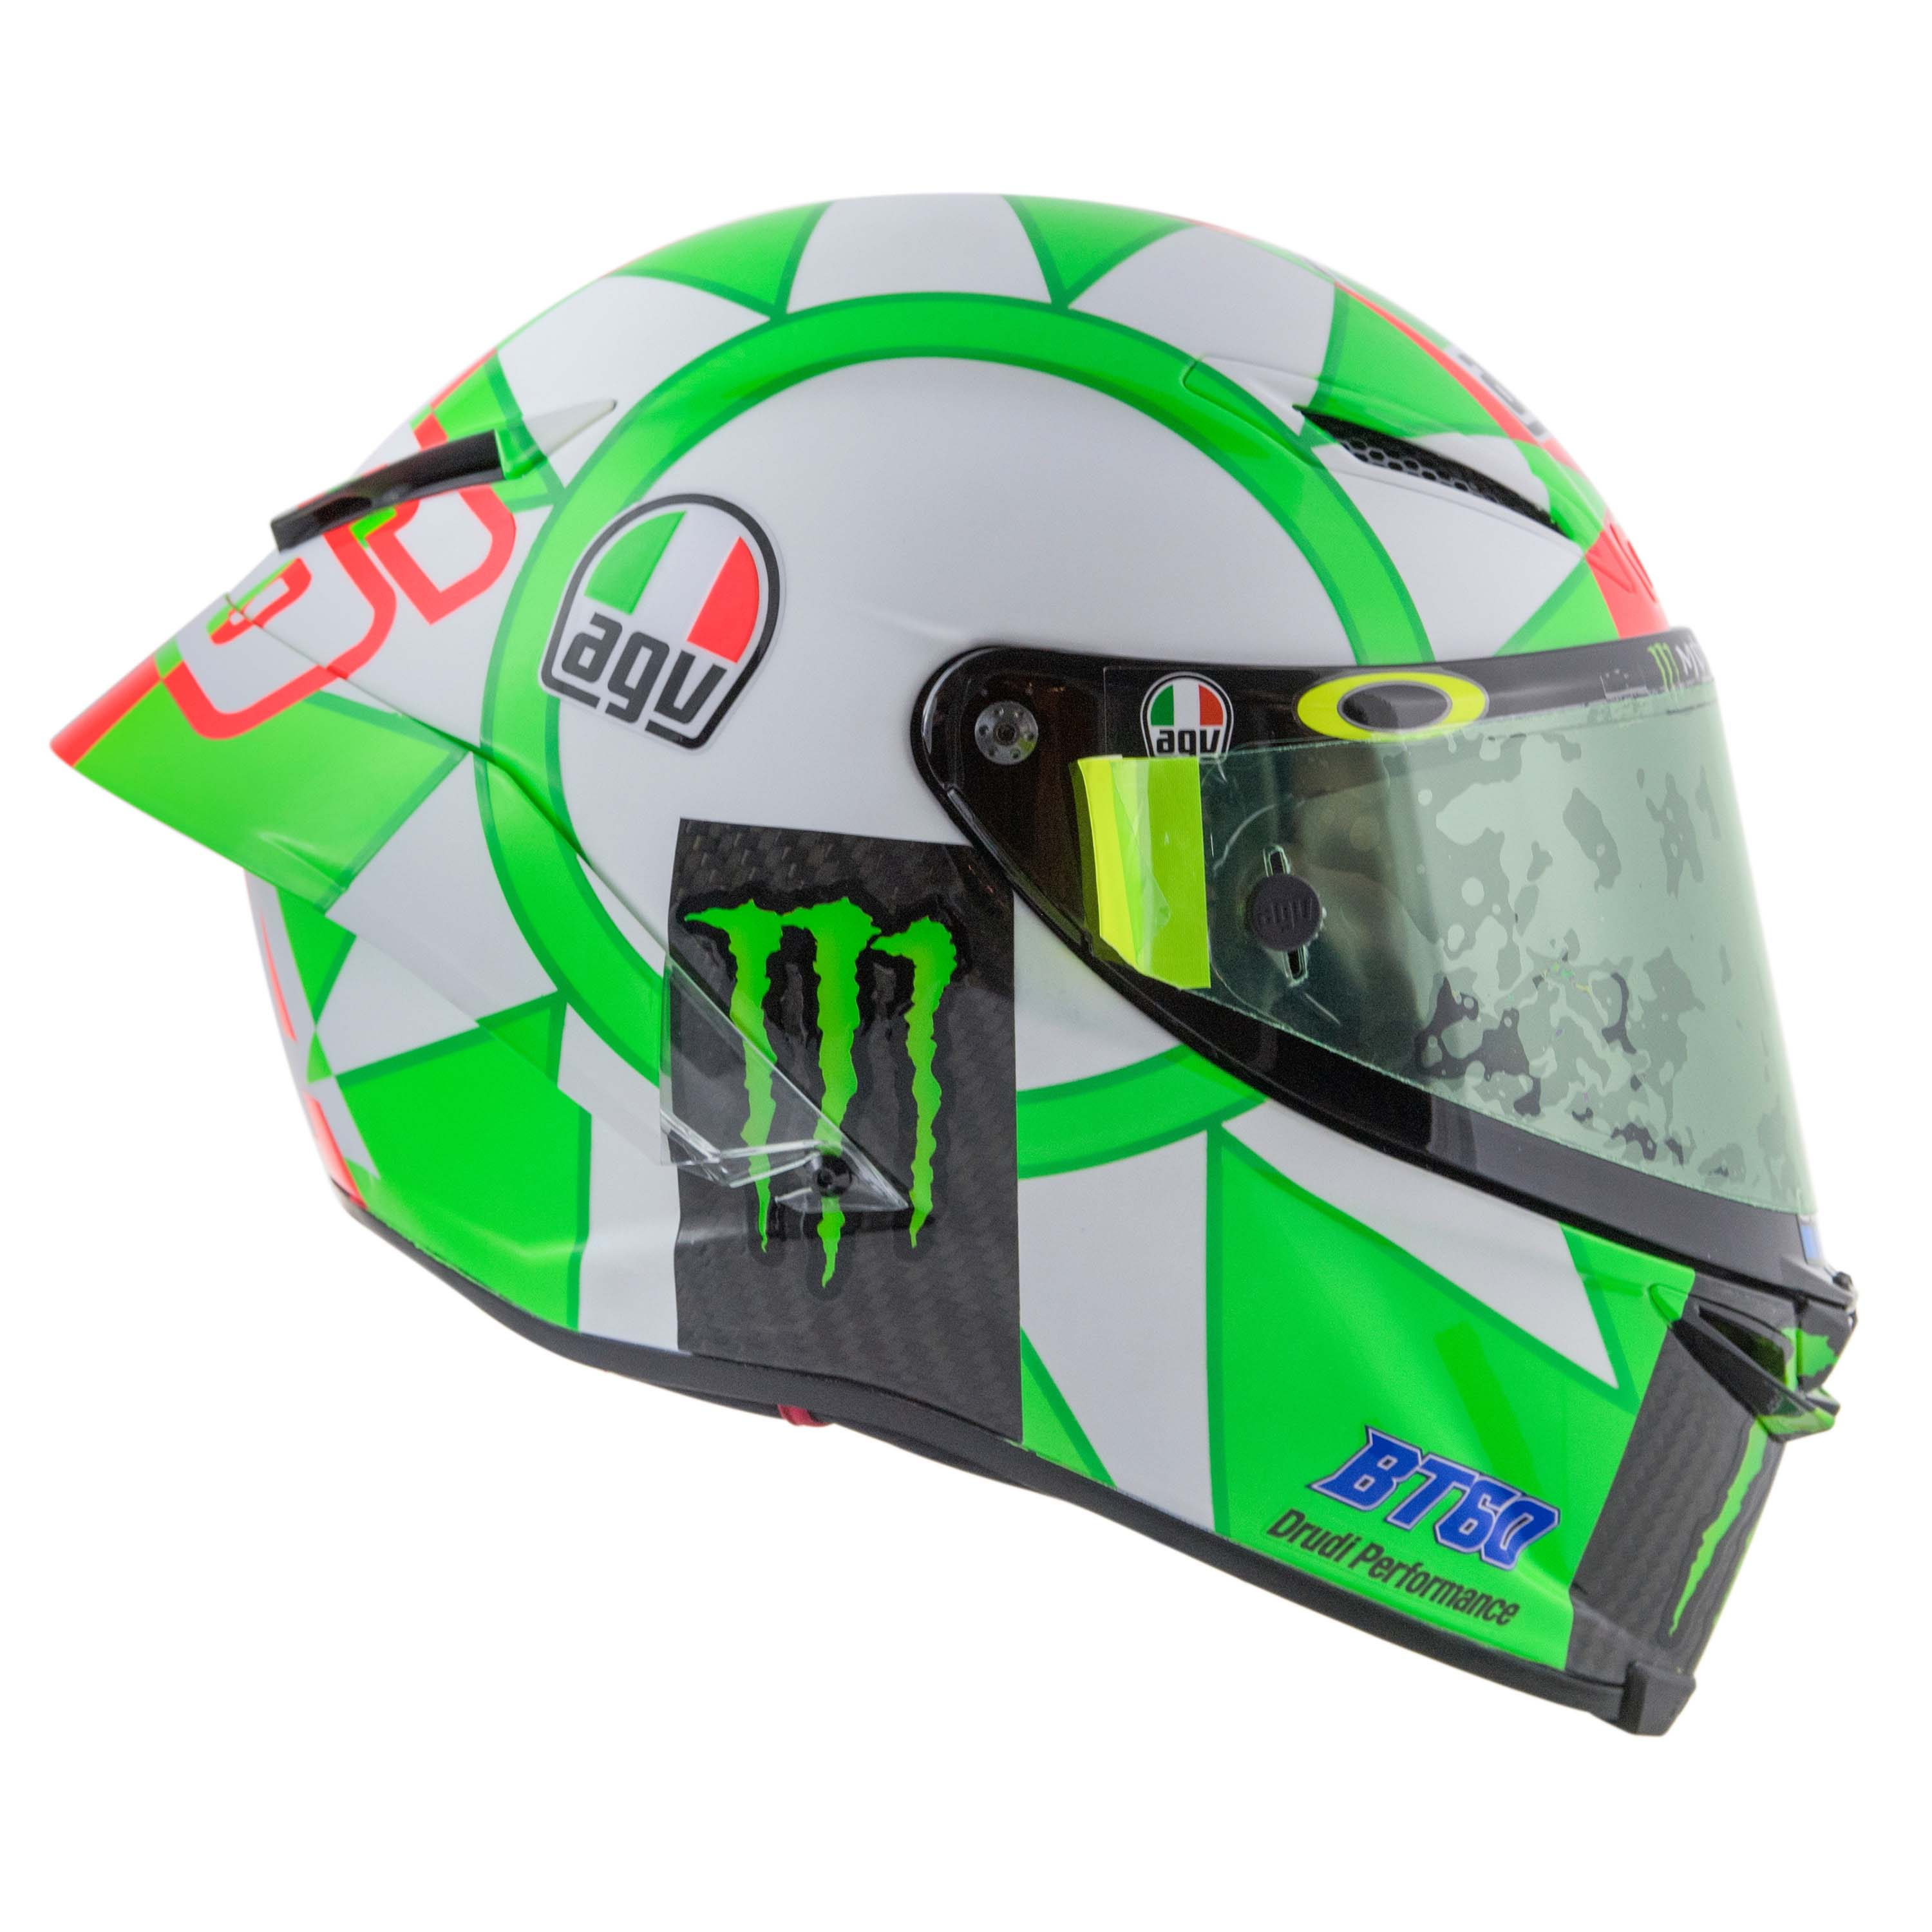 6ec03030 Check out the high-resolution photos after the jump, and expect AGV to make  this special helmet available to the public in due time.